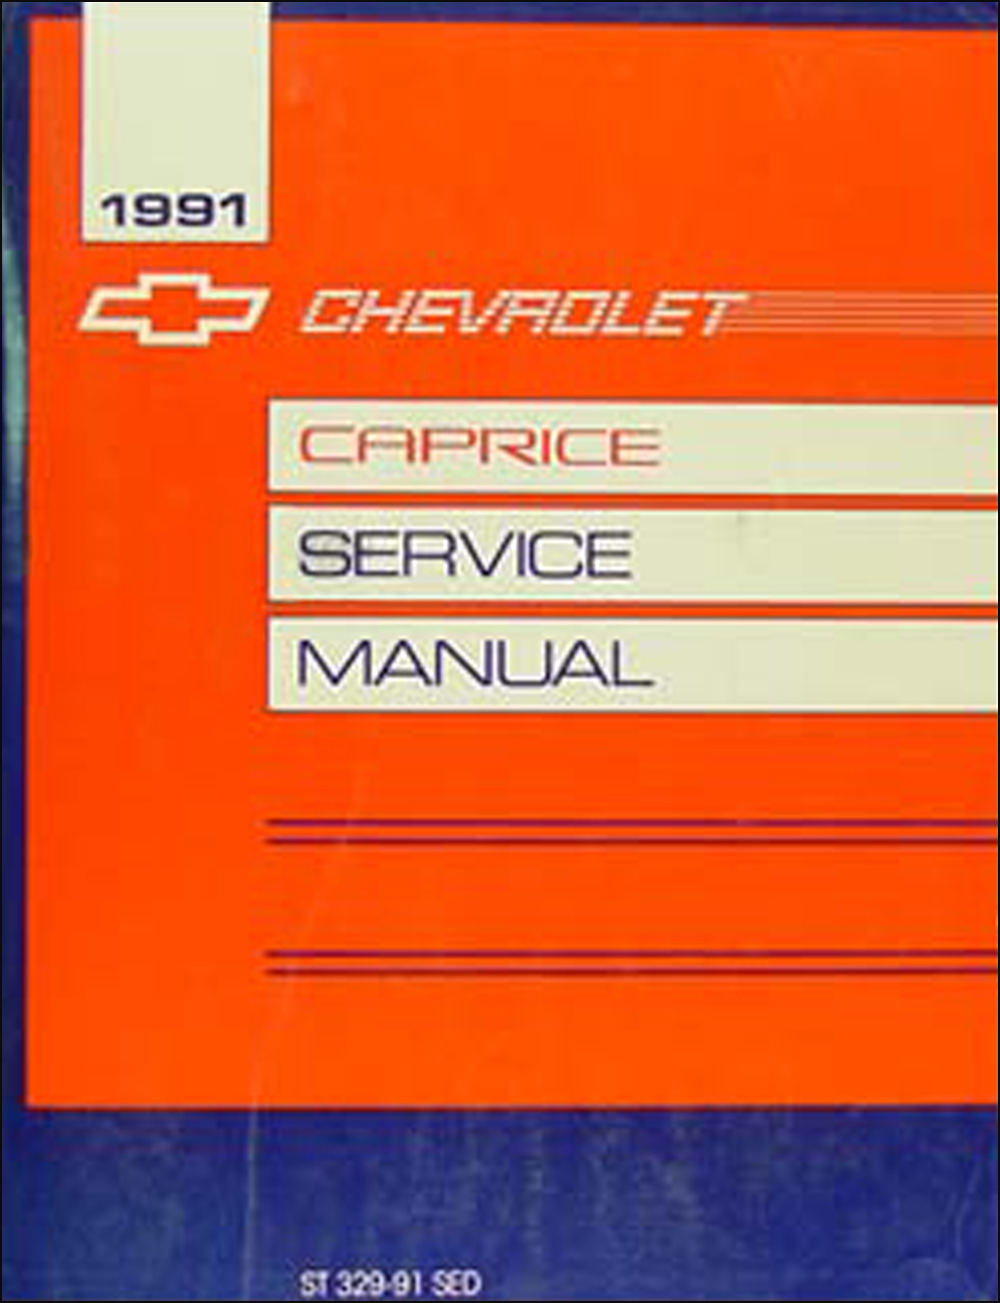 1991 Chevy Caprice Sedan Repair Manual Original